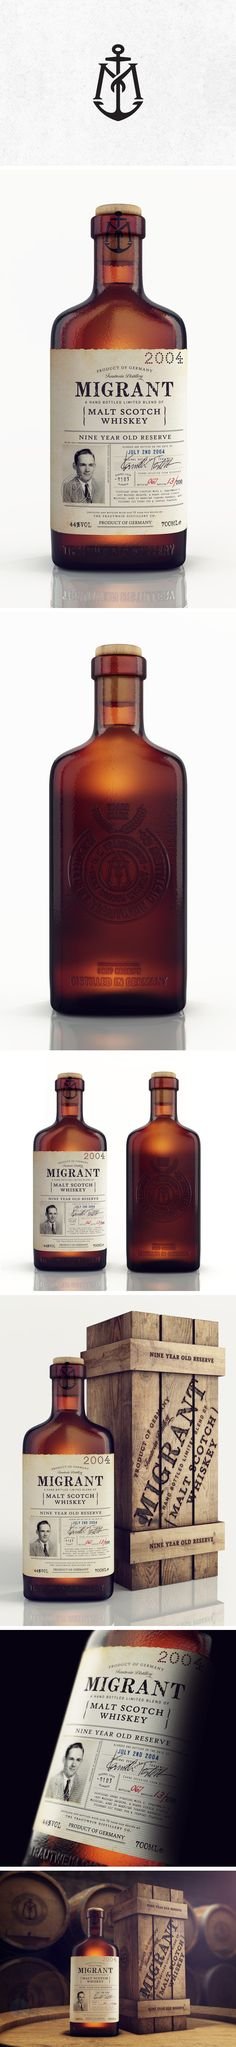 Migrant Whiskey by Chad Michael